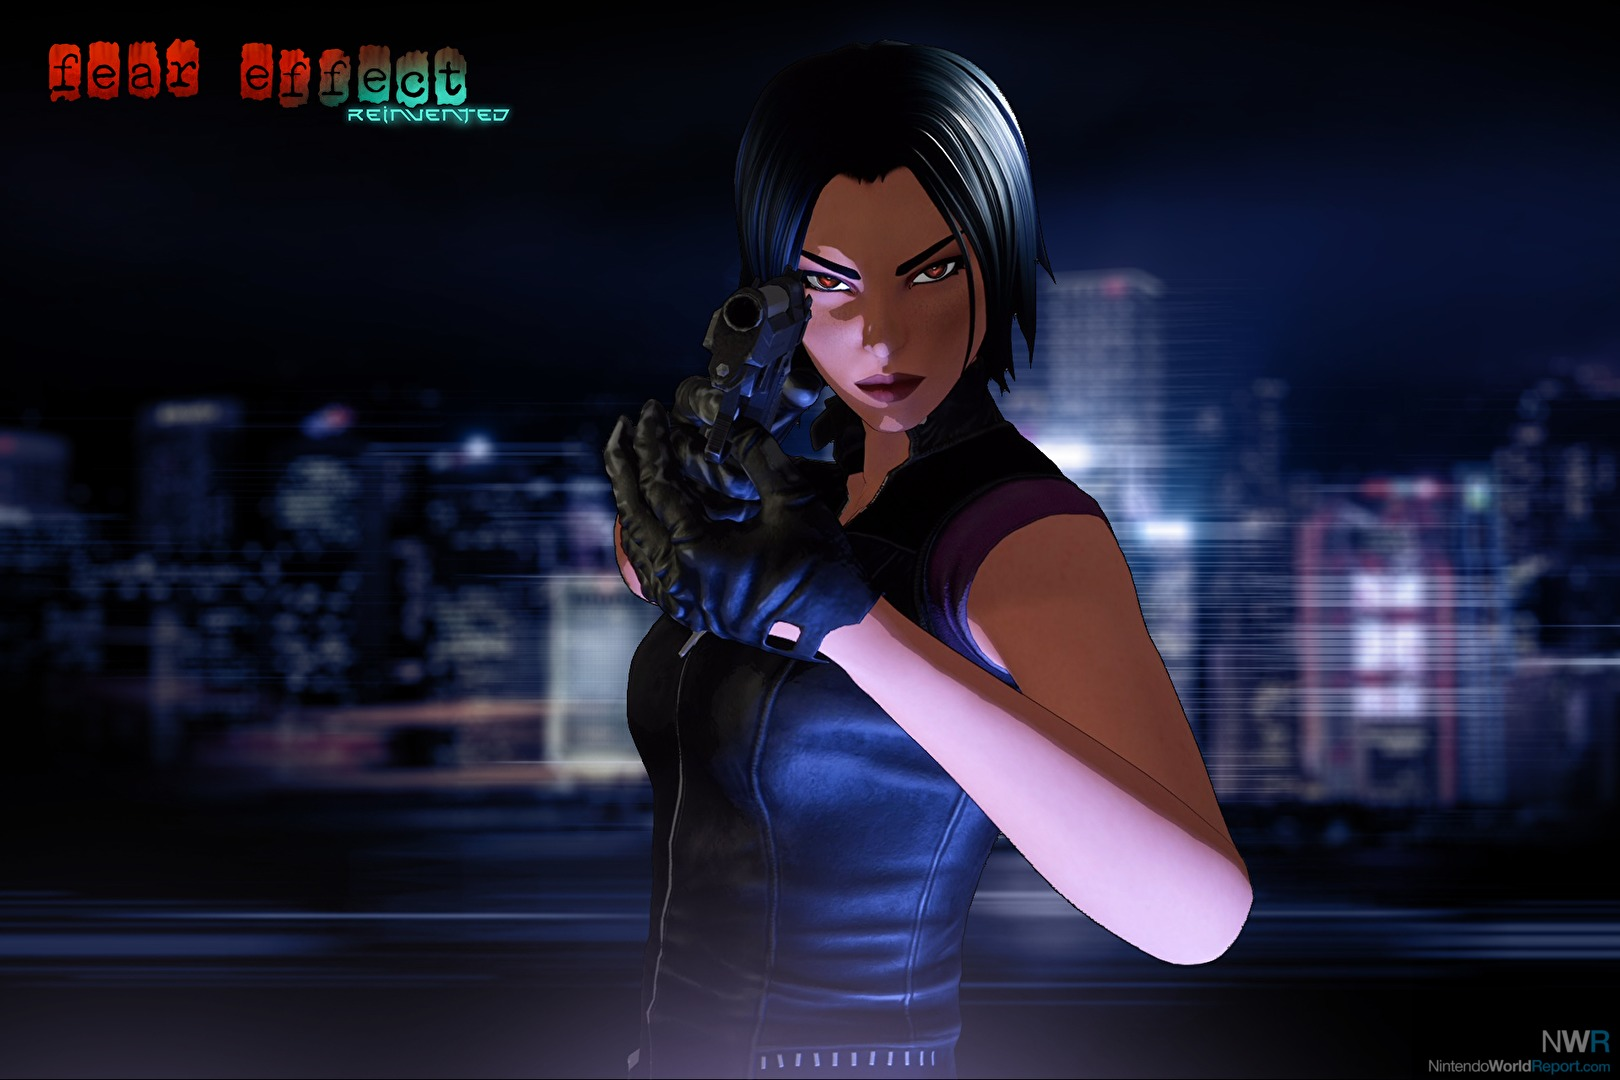 Fear Effect remake announced for PS4, PC, Xbox One and Nintendo Switch